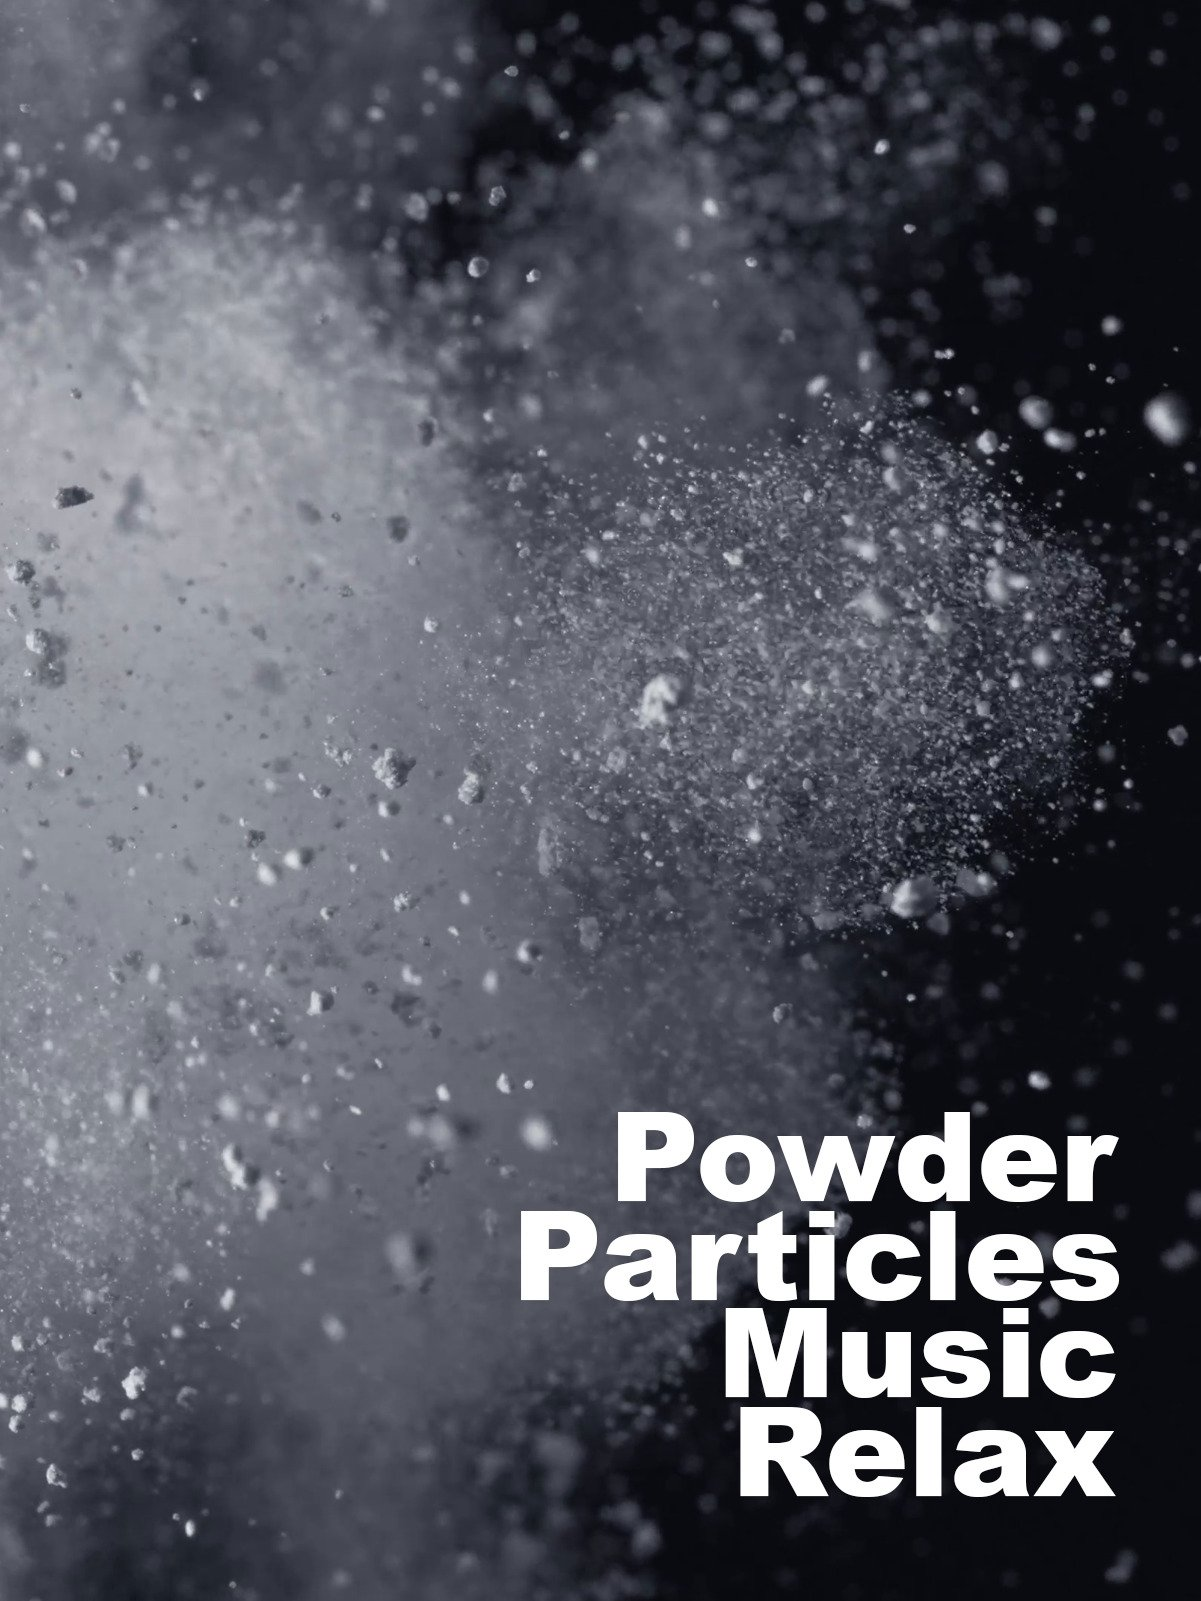 Particles Powder Music Relax